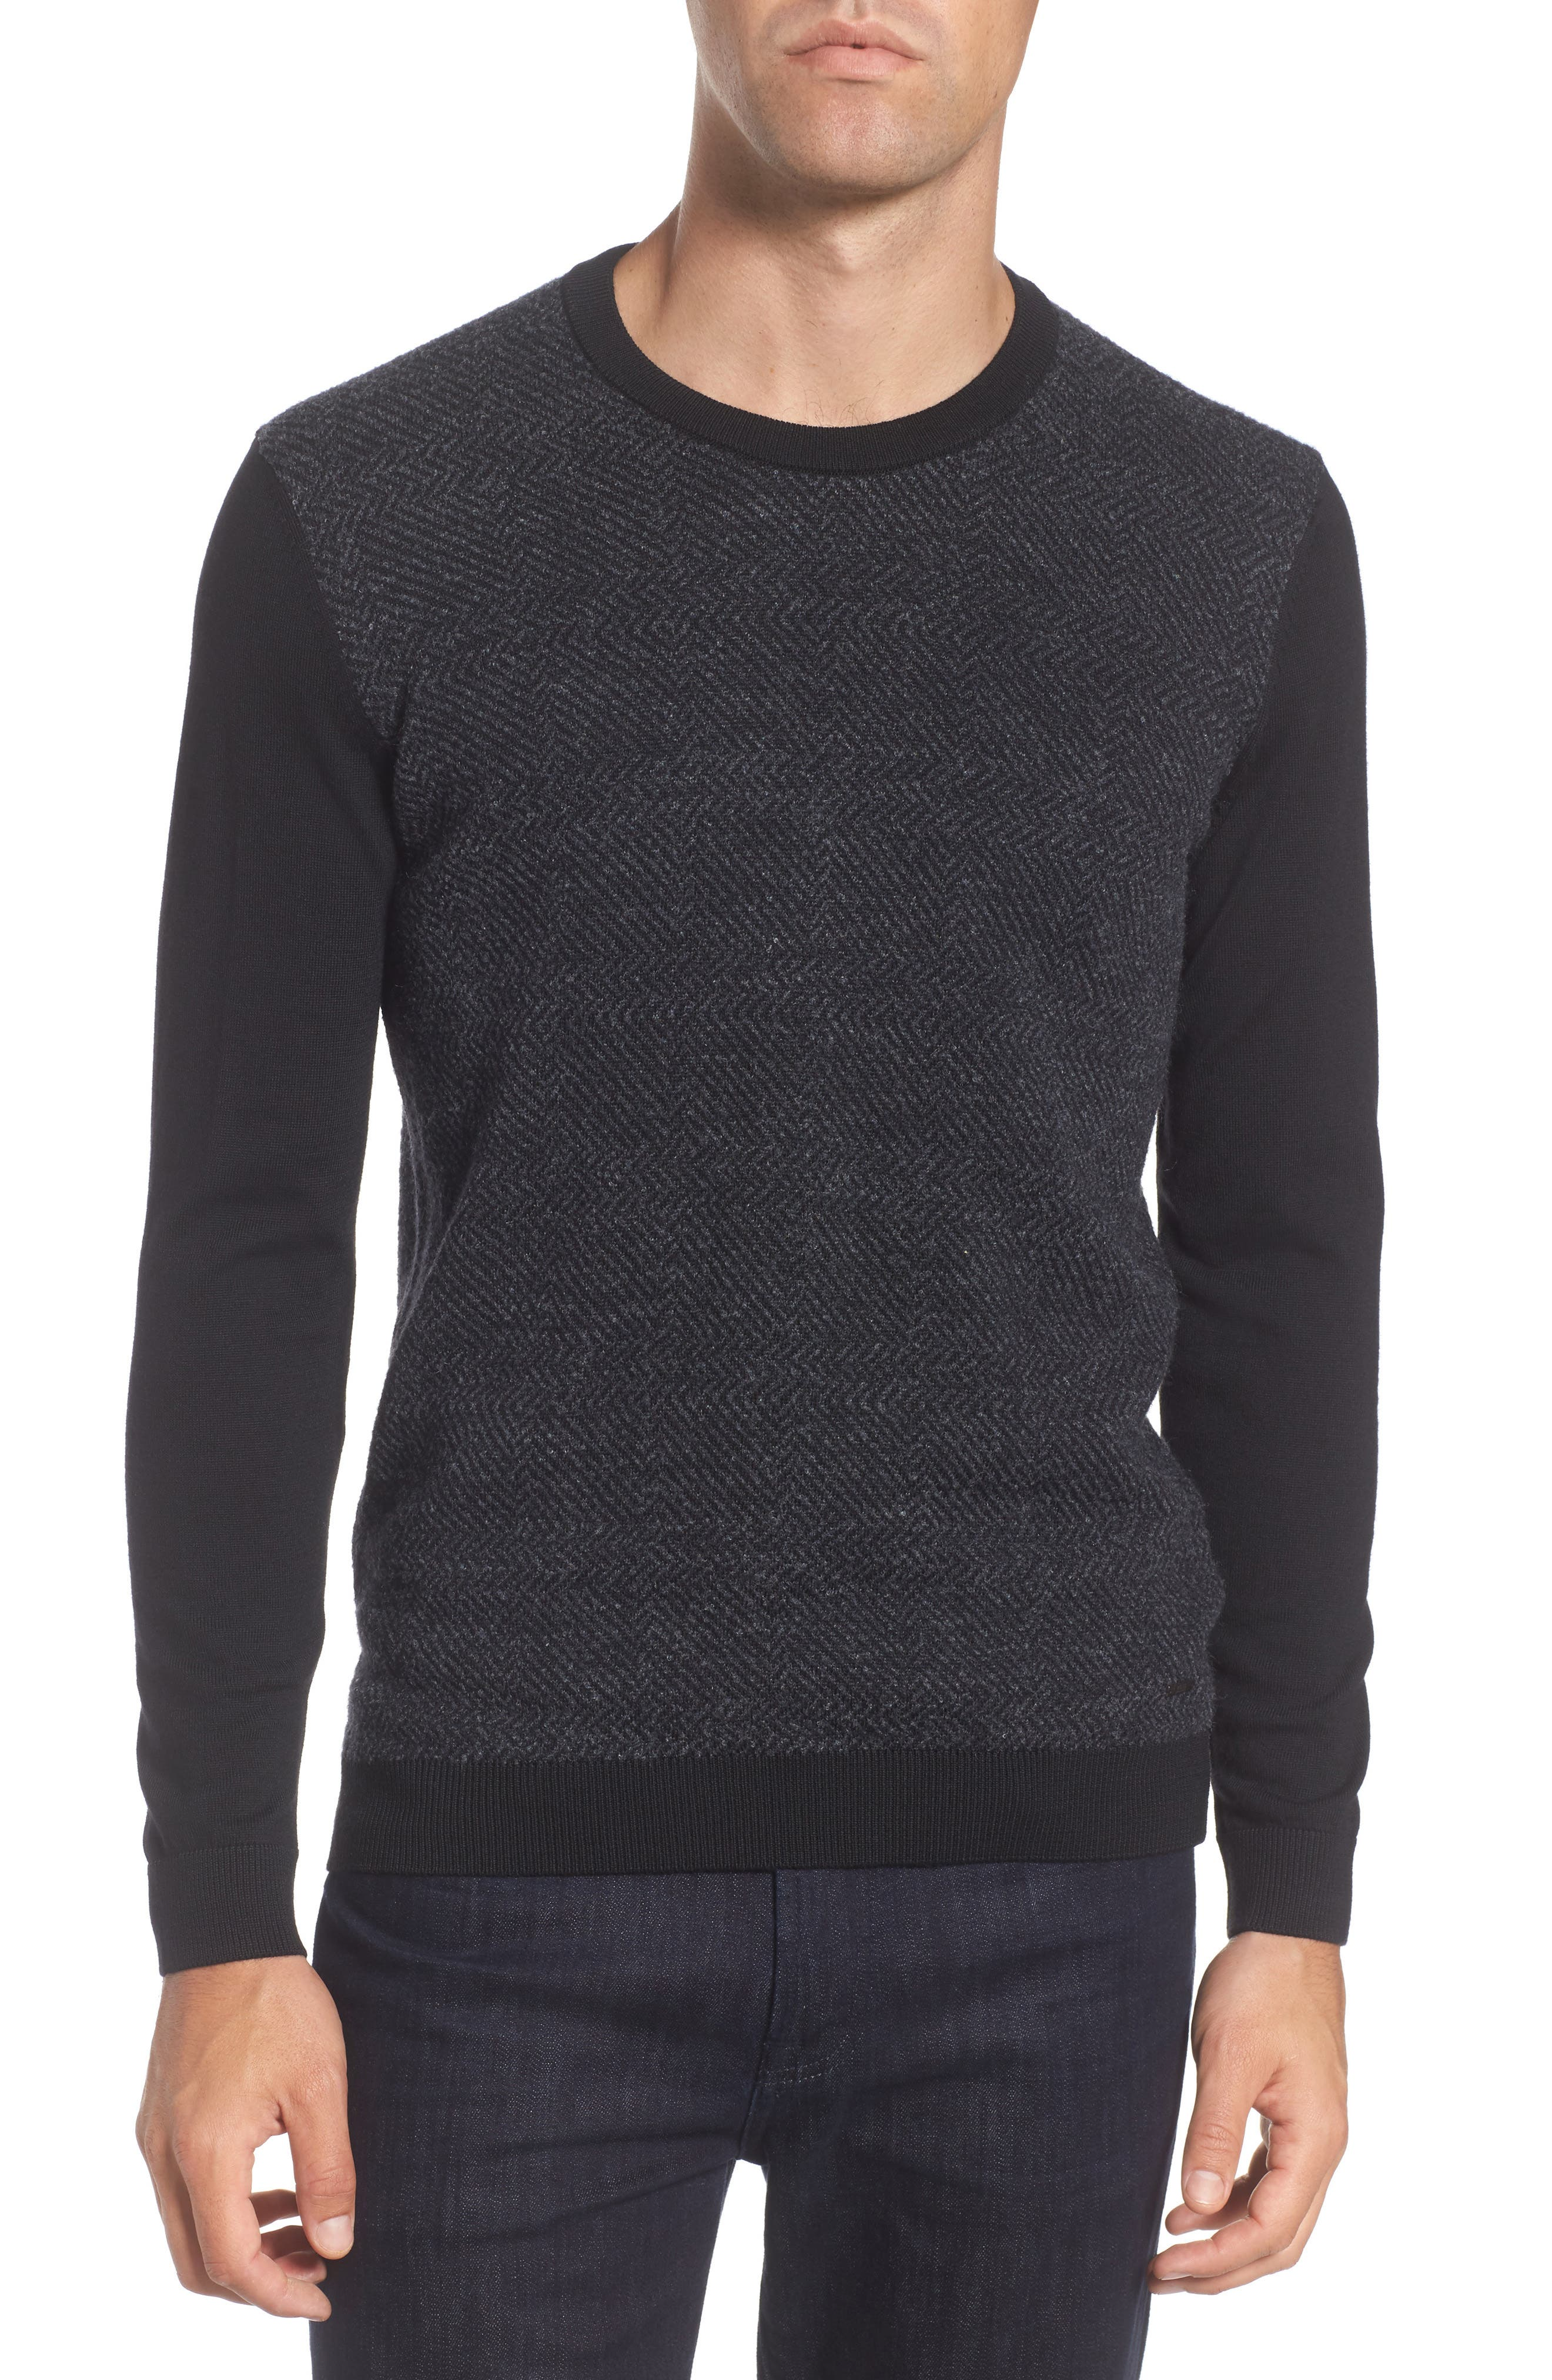 Notto Wool Blend Sweater,                         Main,                         color, 061